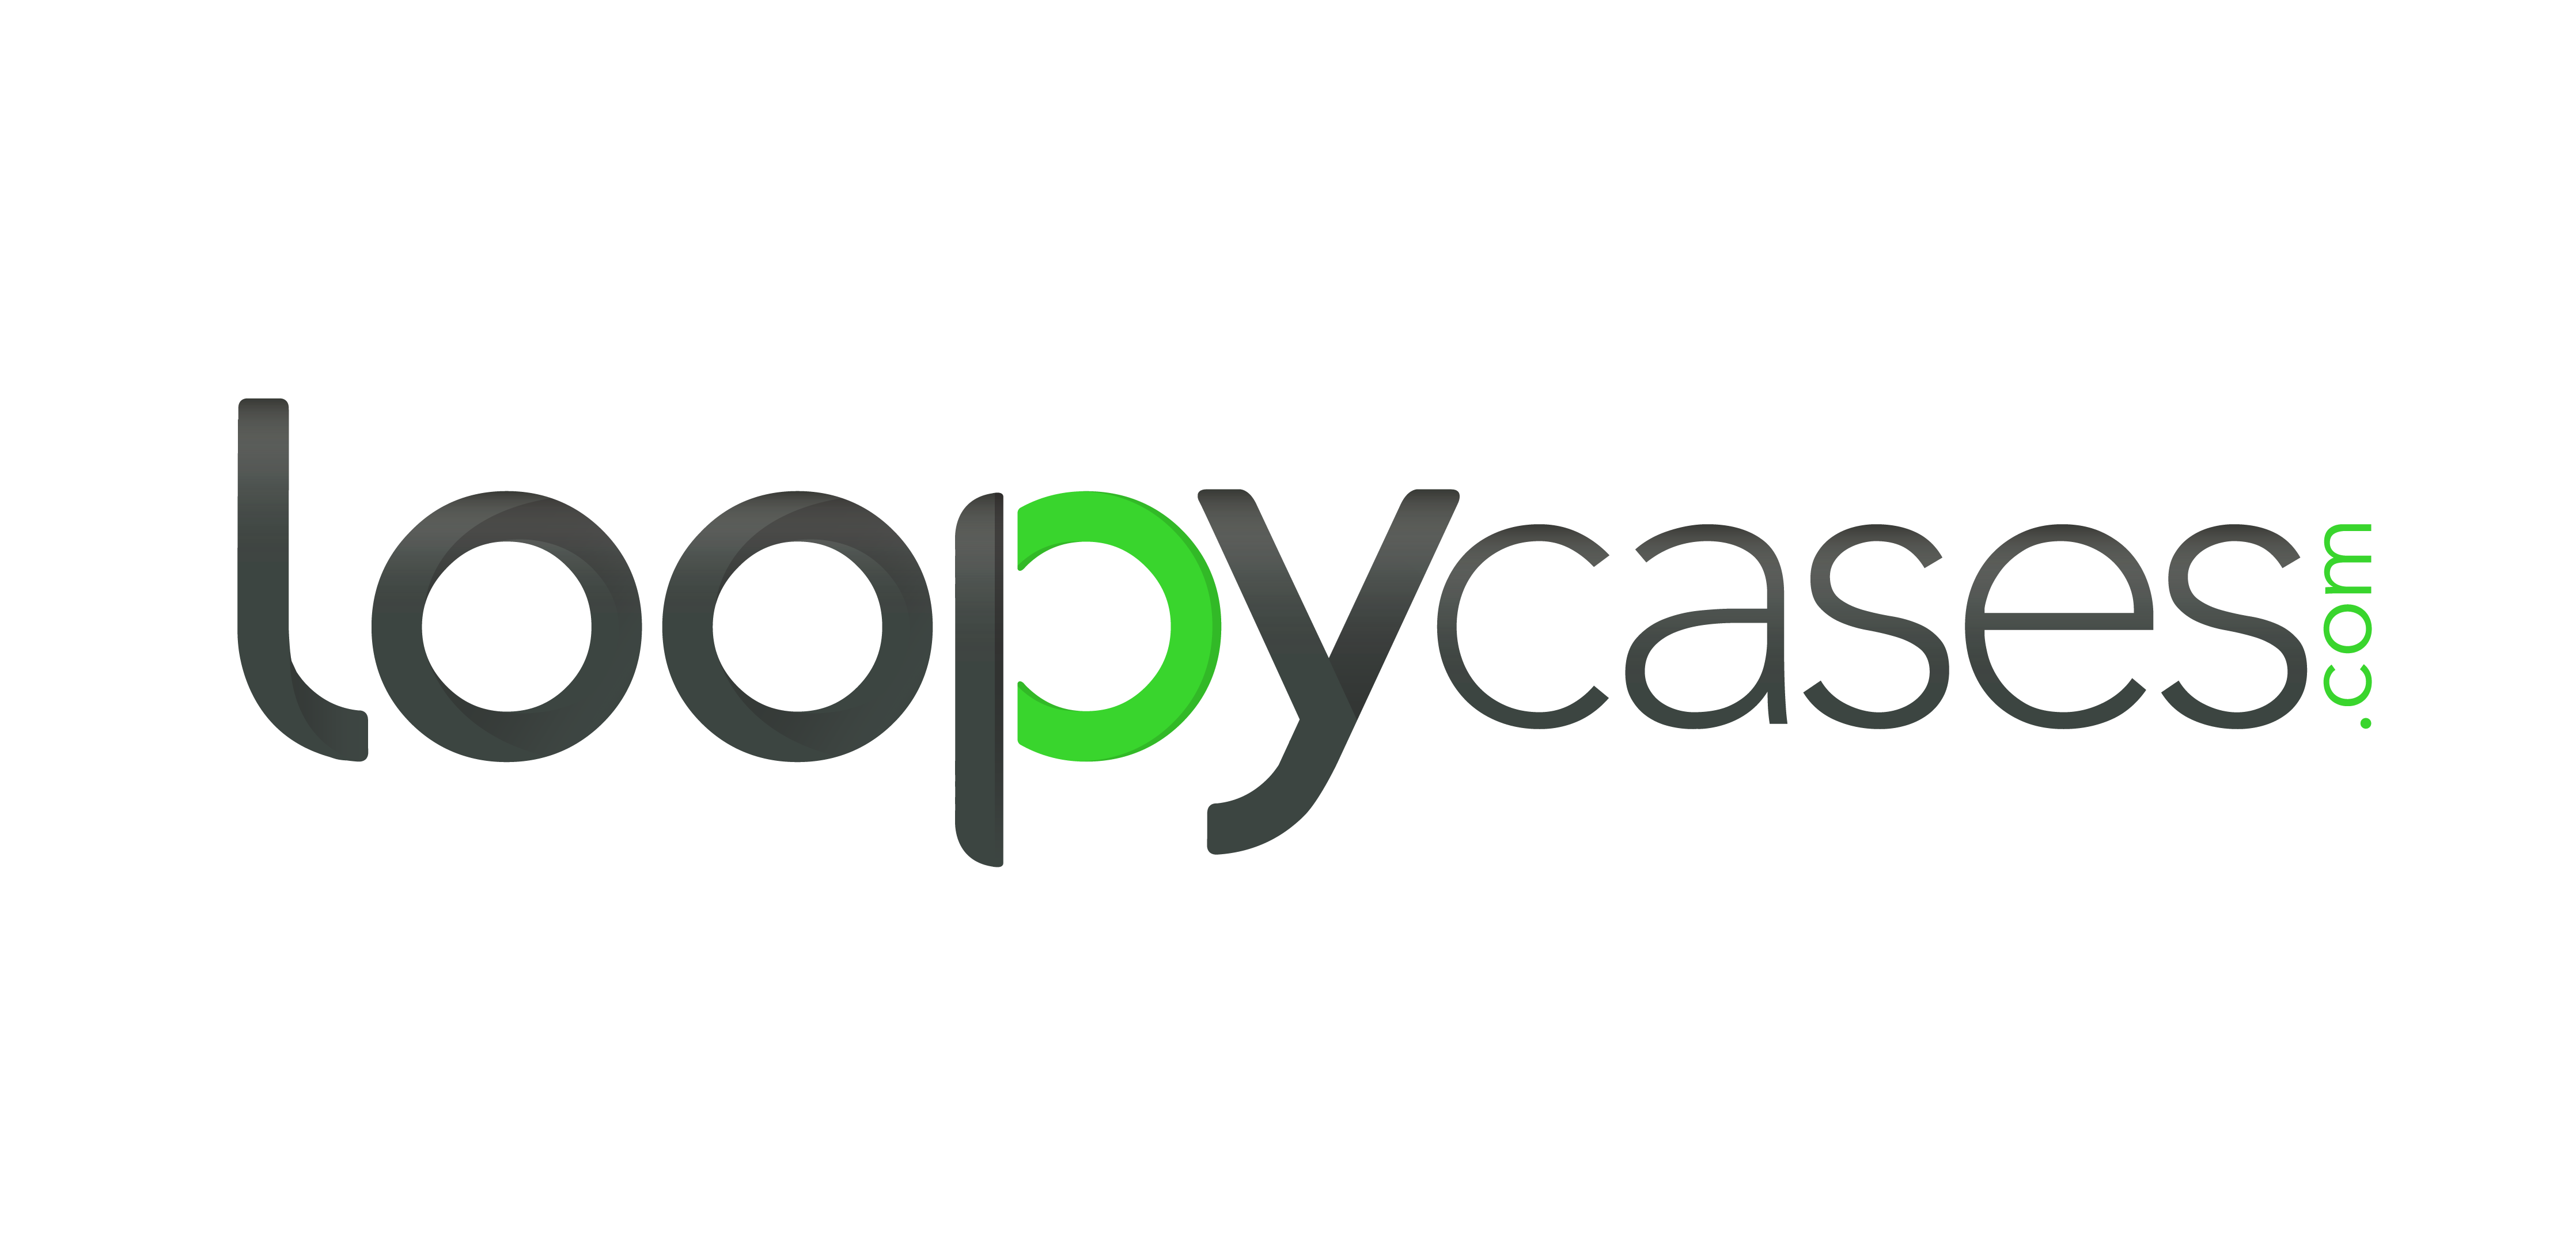 Loopy Cases logo